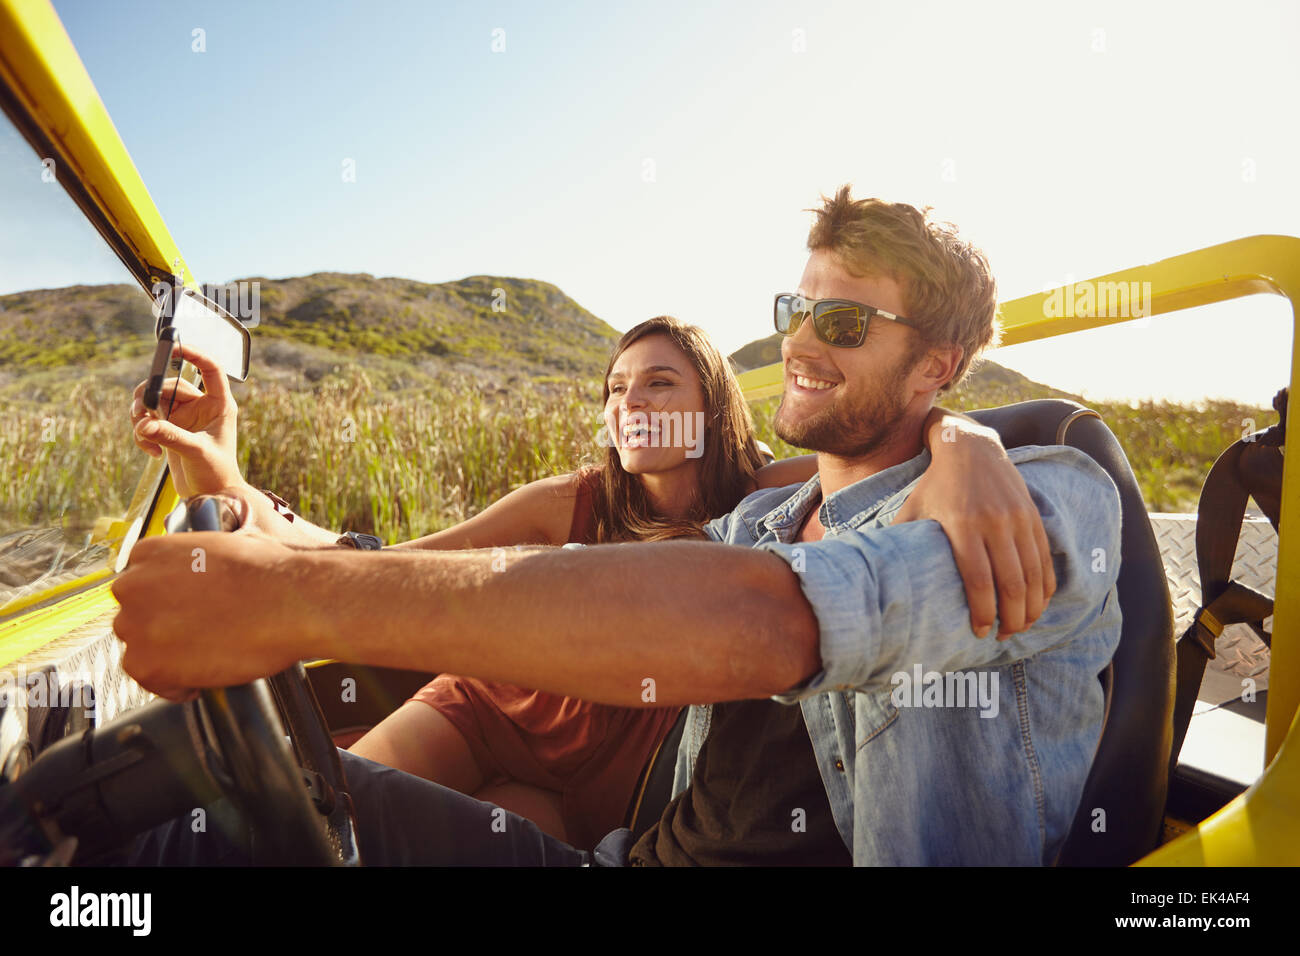 Man driving beach buggy with woman taking selfie on her smart phone. Couple having fun on road trip on a summer - Stock Image